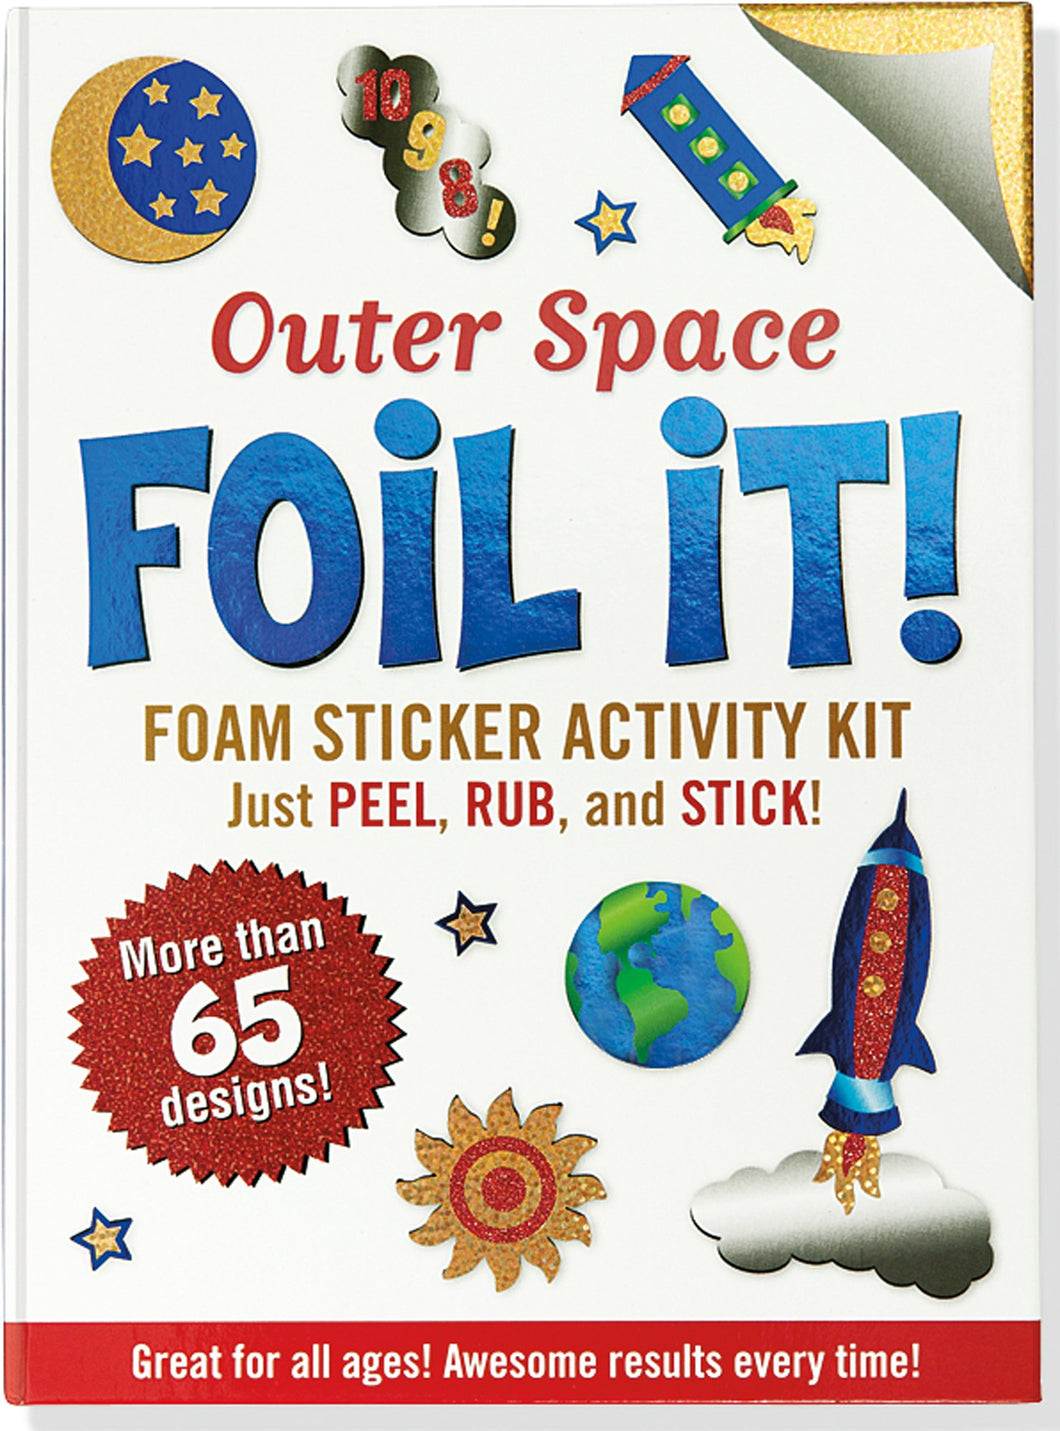 Outer Space Foil It!